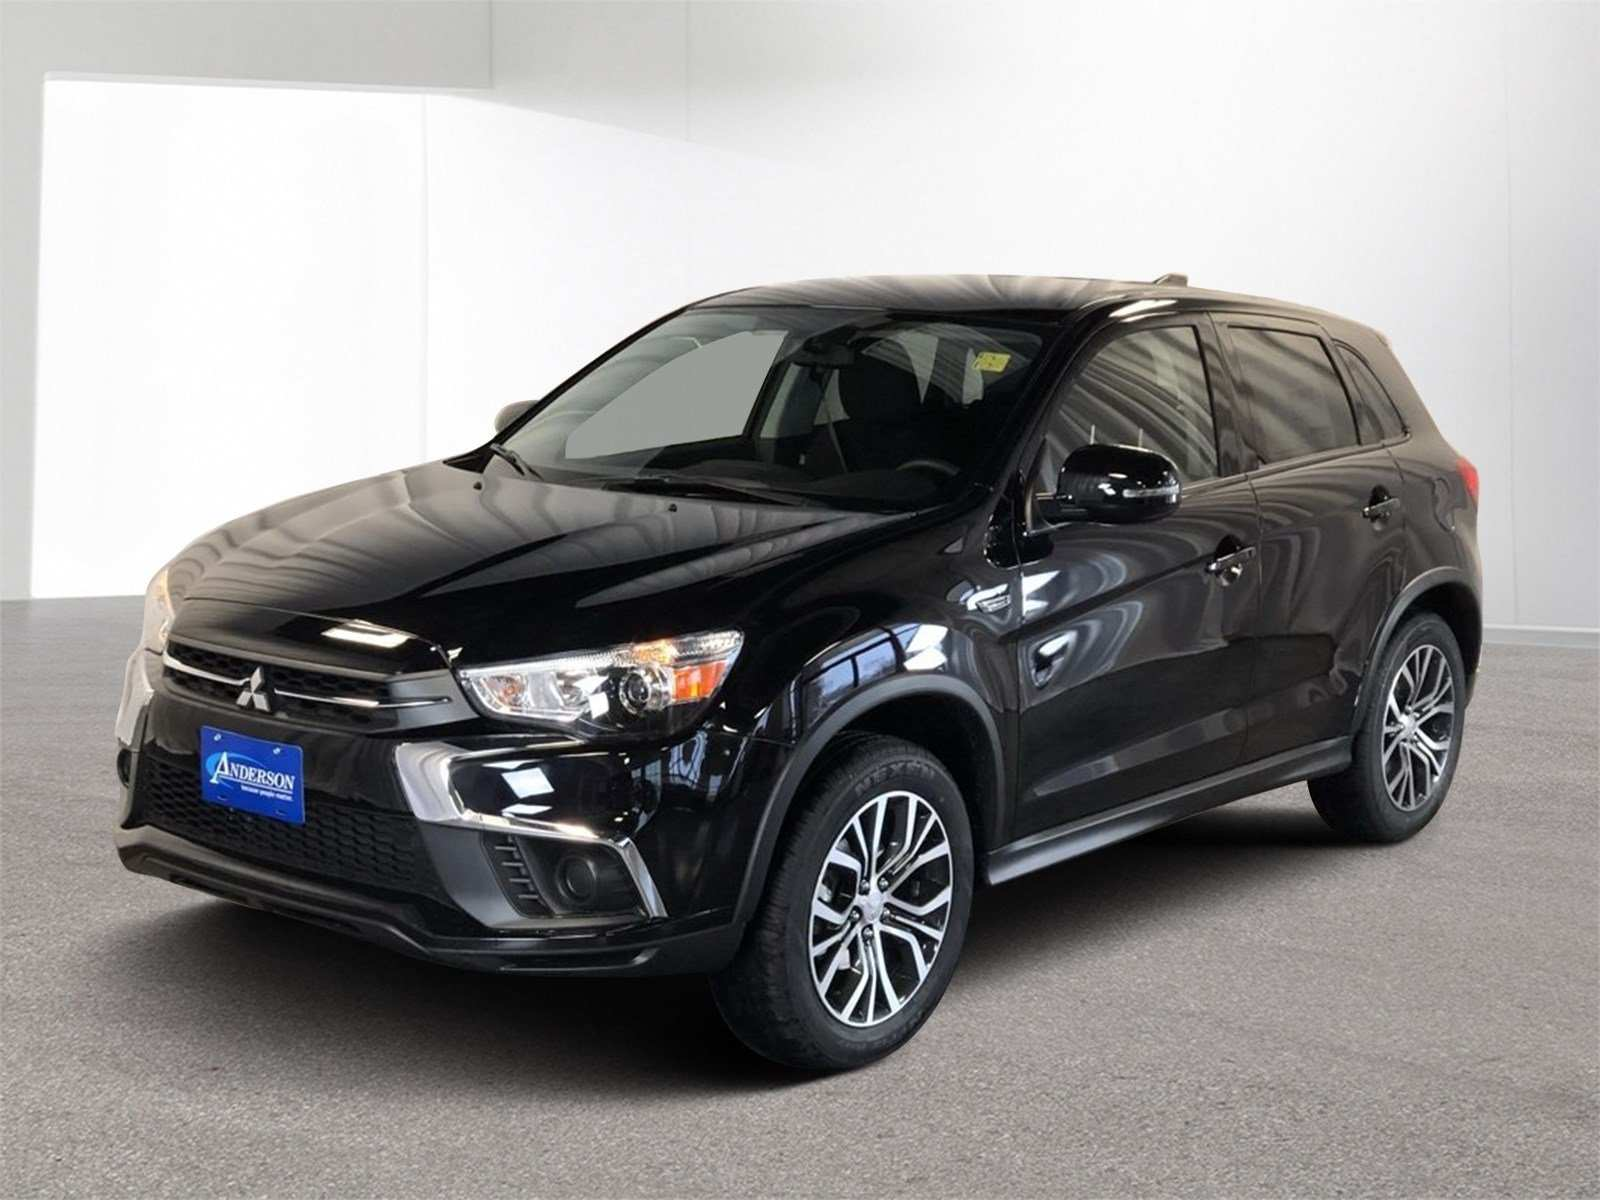 29 Gallery of 2019 All Mitsubishi Outlander Sport Overview for 2019 All Mitsubishi Outlander Sport